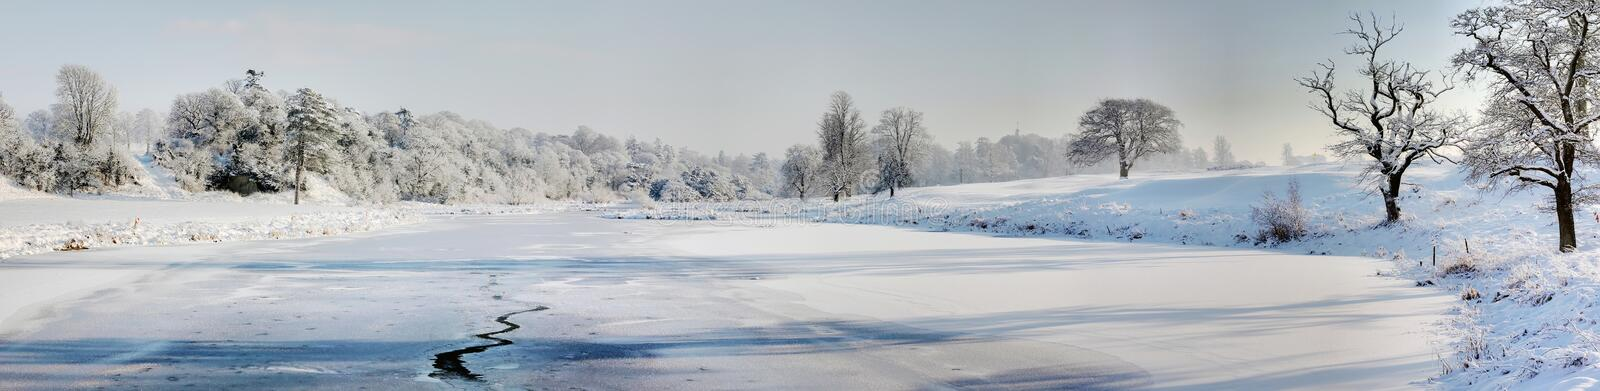 Frozen pond royalty free stock image